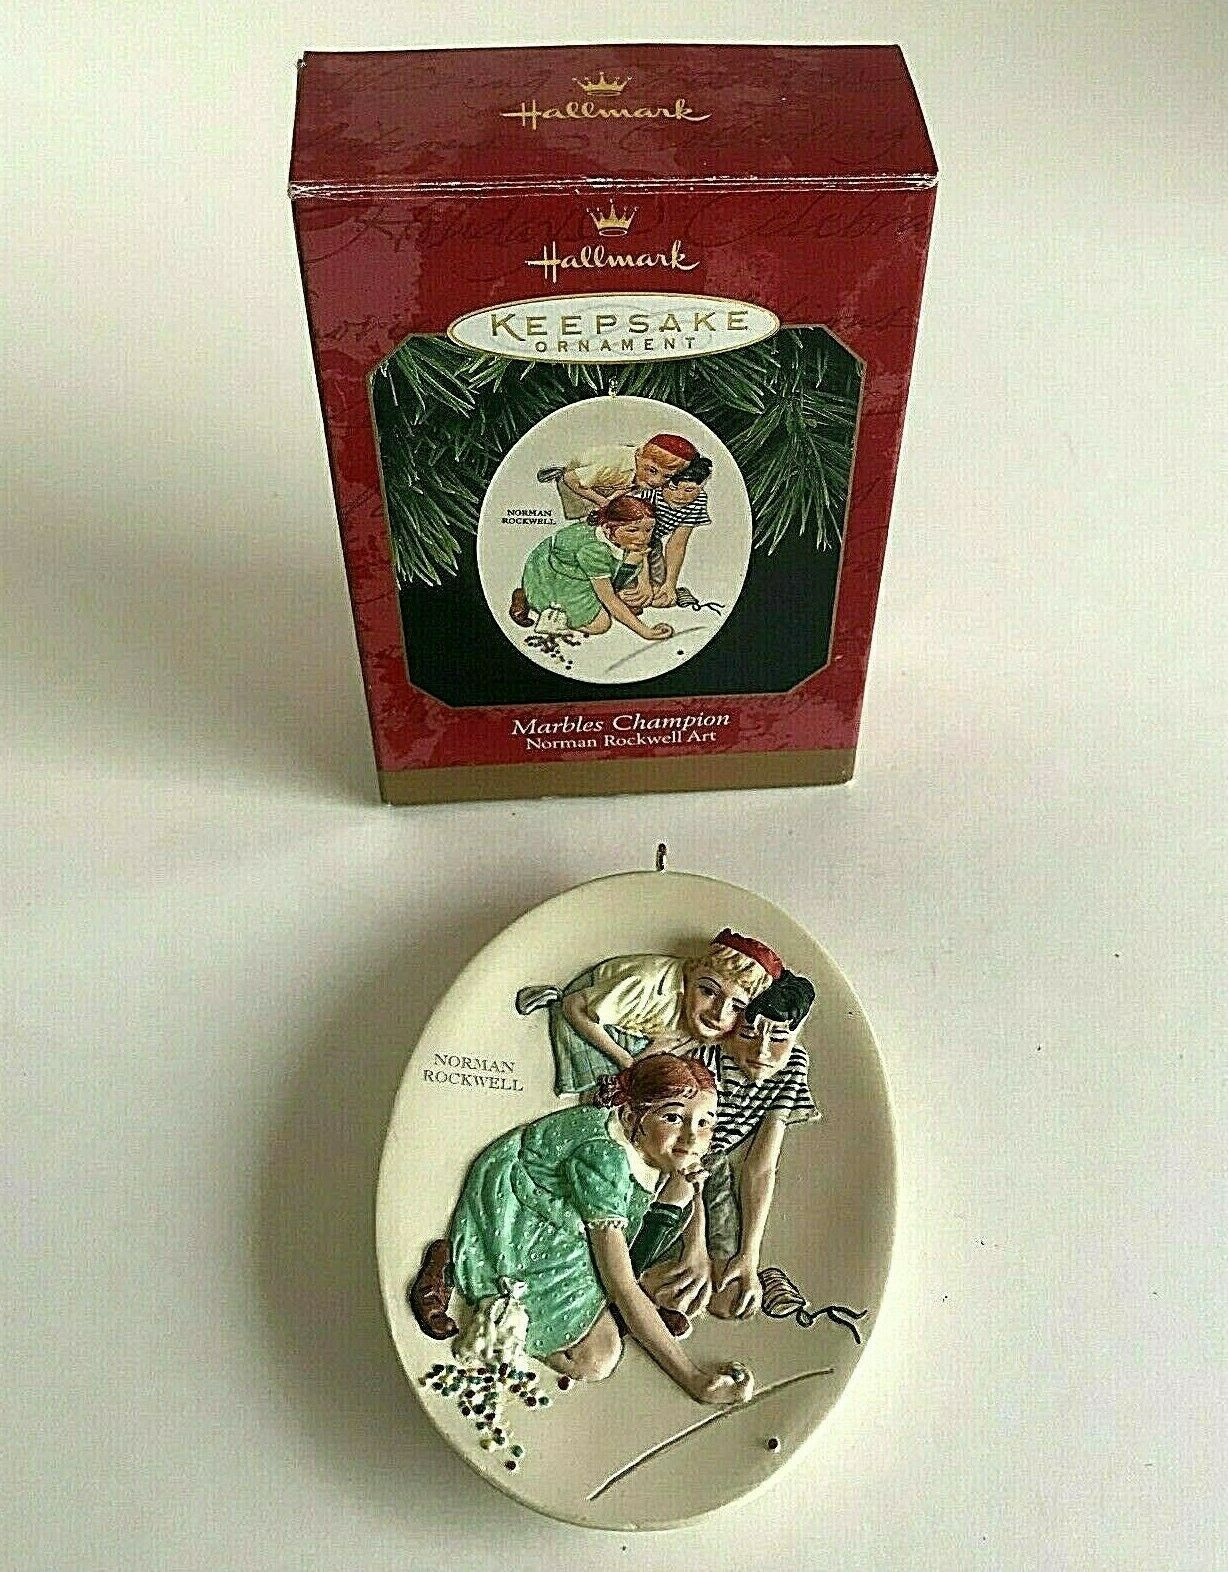 Primary image for Vintage 1997 Hallmark Keepsake Marbles Champion Norman Rockwell Ornament